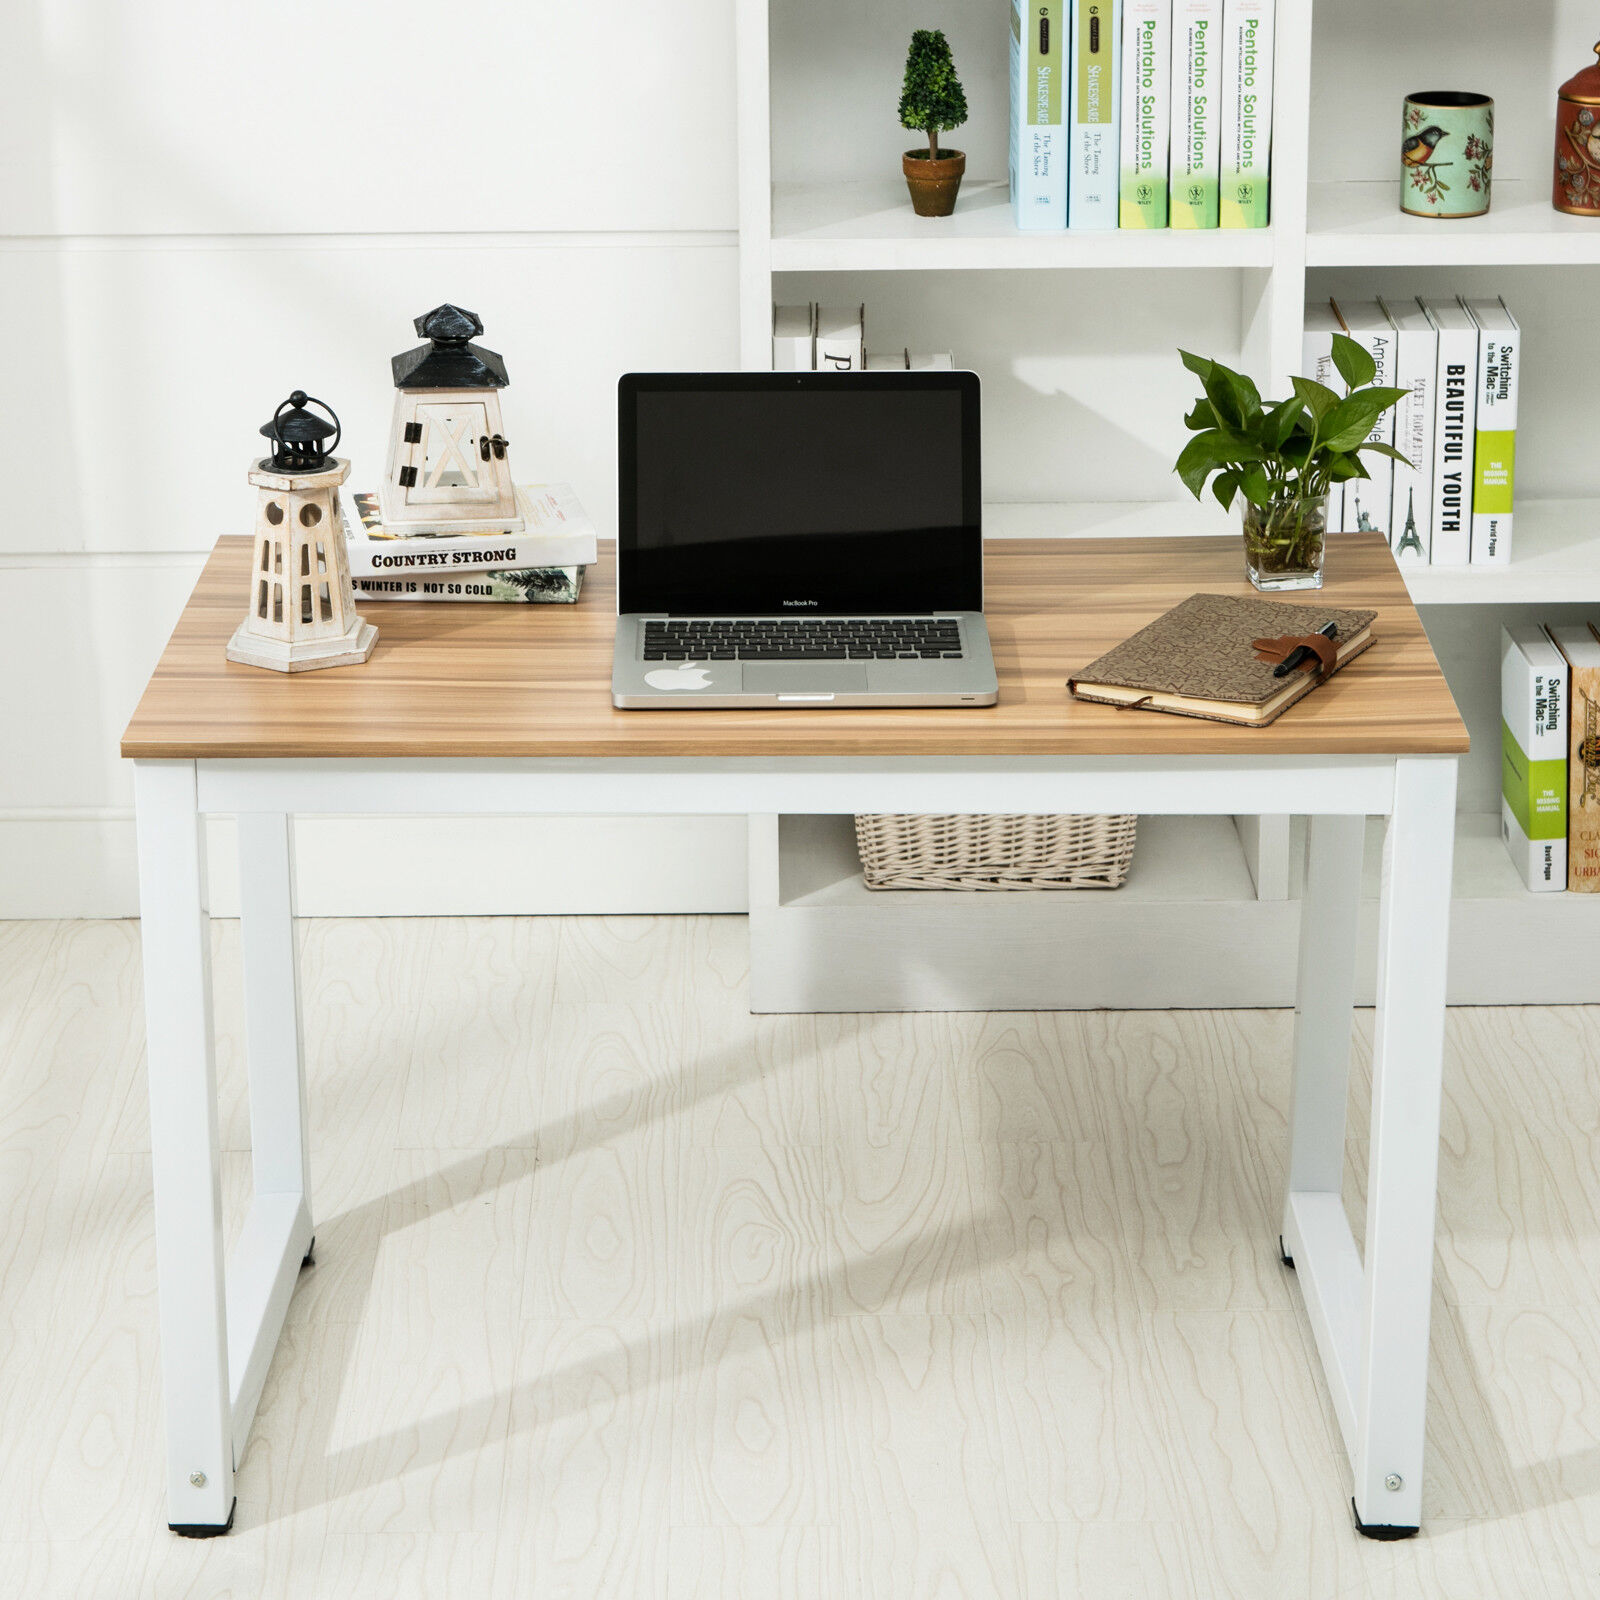 PC Computer Desk Laptop Table Wood Workstation Study Home Office Furniture New